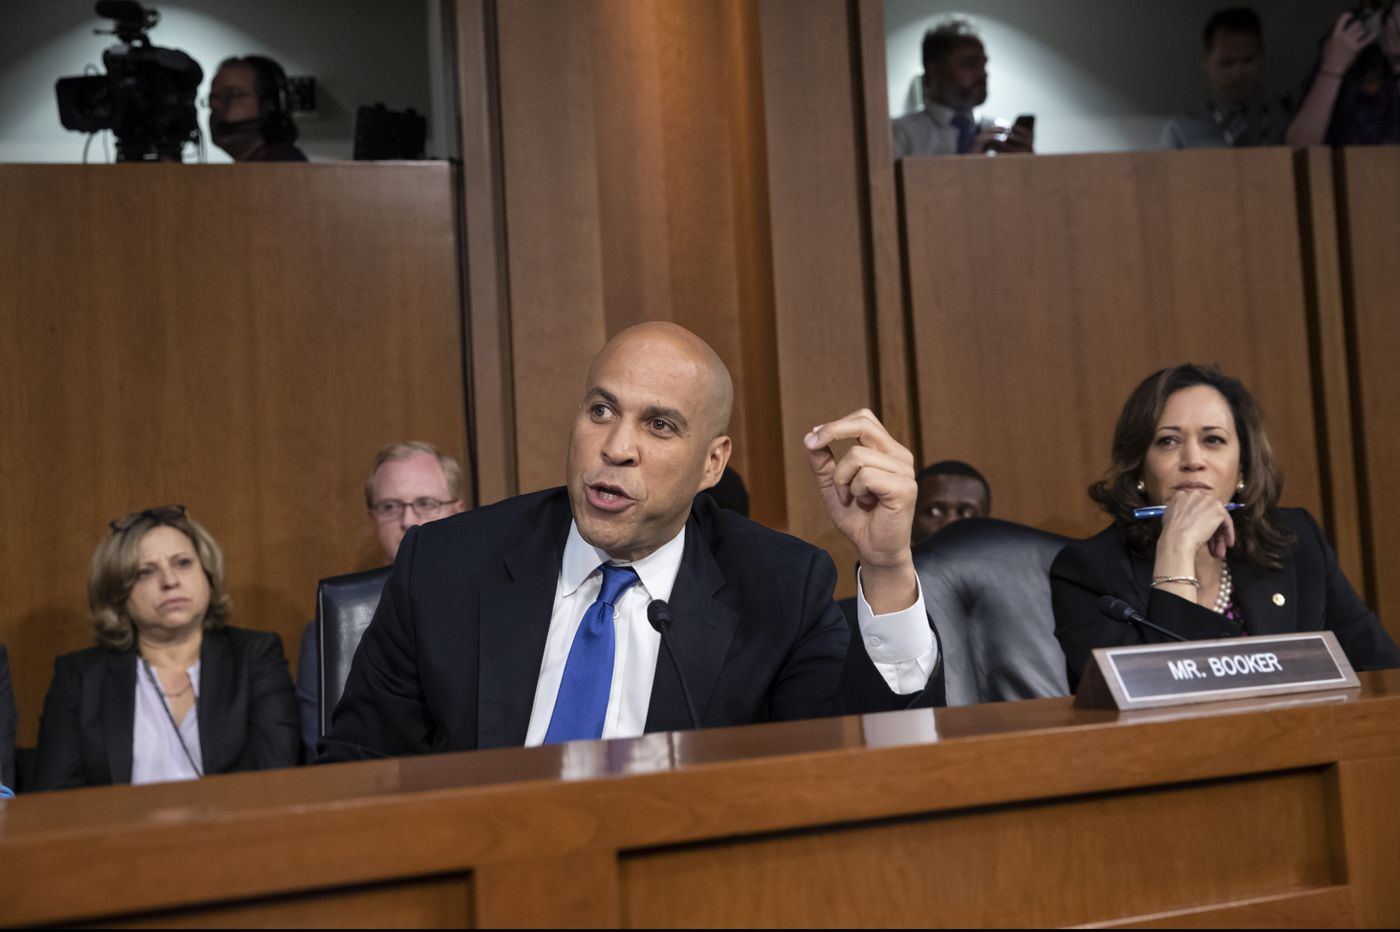 'So much is at stake': Why Cory Booker has shed his nice guy image in Brett Kavanaugh hearings